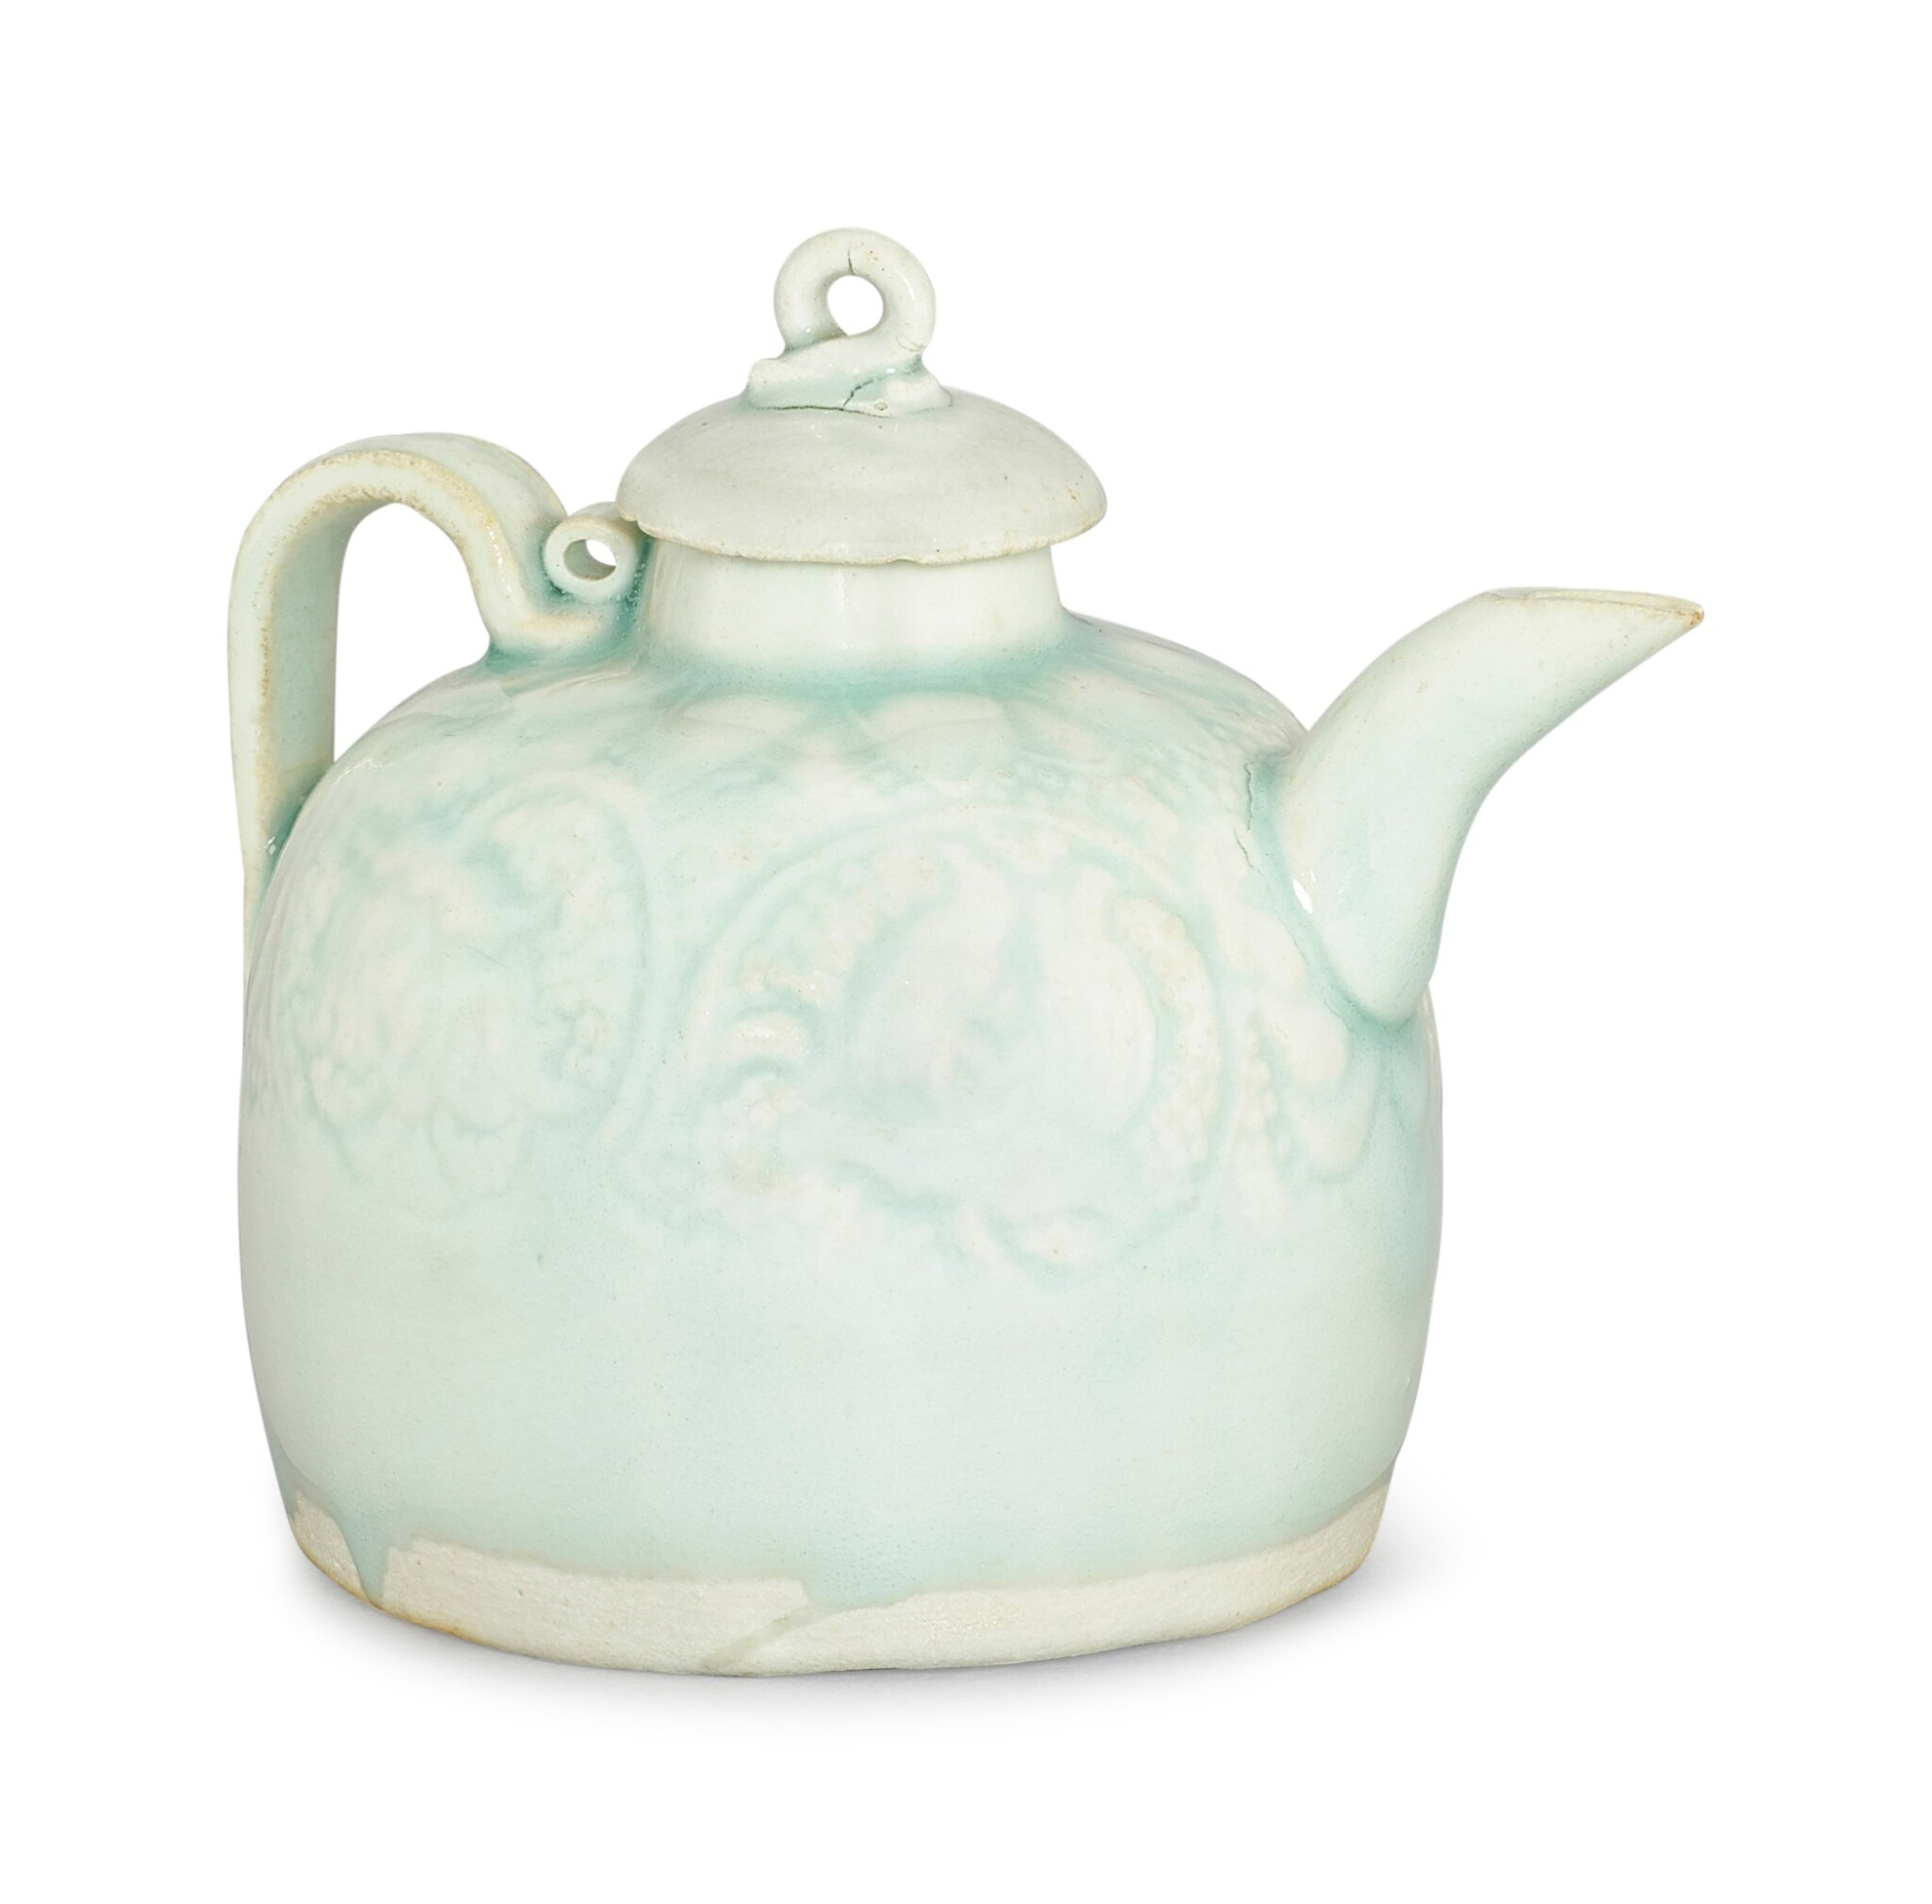 A QINGBAI MOULDED EWER AND A COVER SONG DYNASTY | 宋 青白釉印花帶蓋執壺